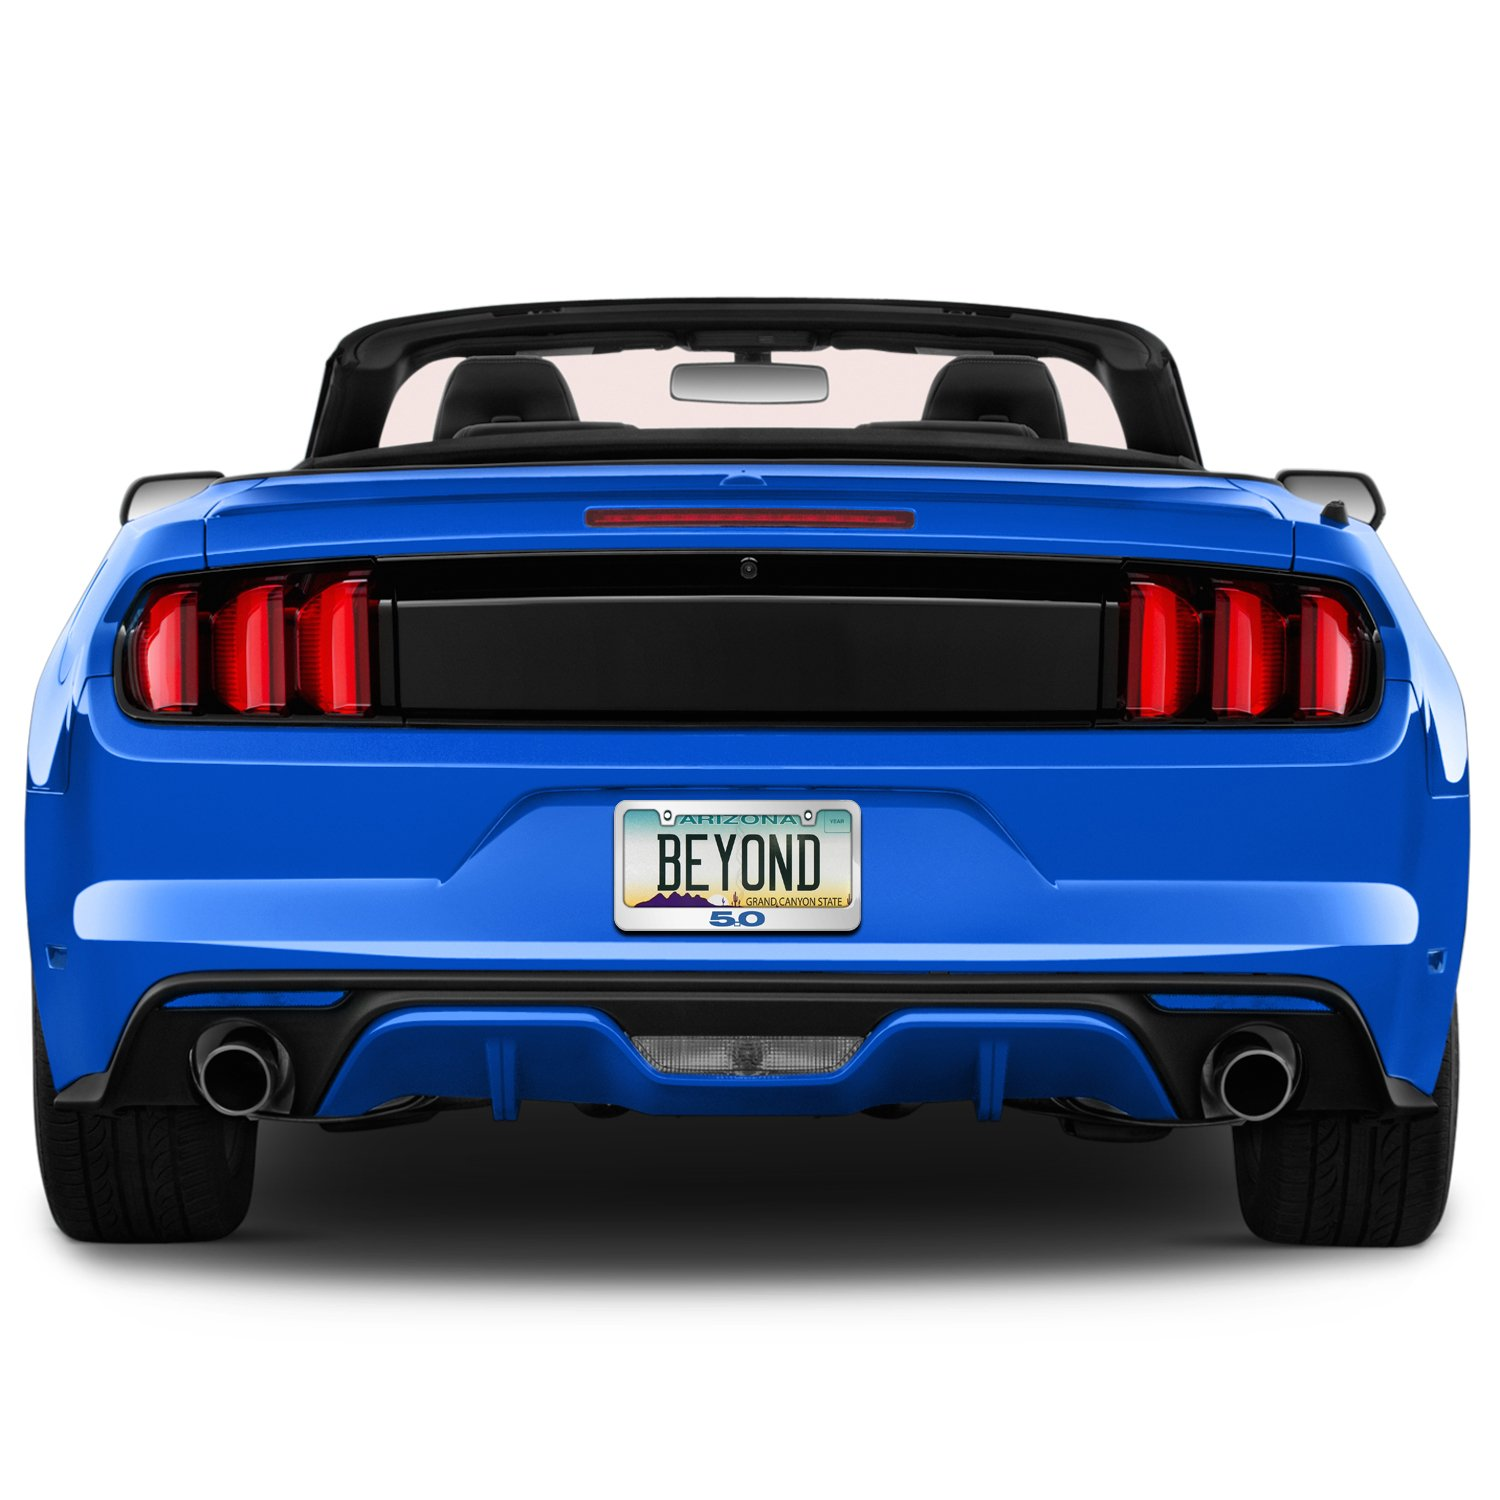 Ford Mustang 5.0 in Blue Mirror Chrome Metal License Plate Frame by iPick Image Official Licensed Product Made in the USA